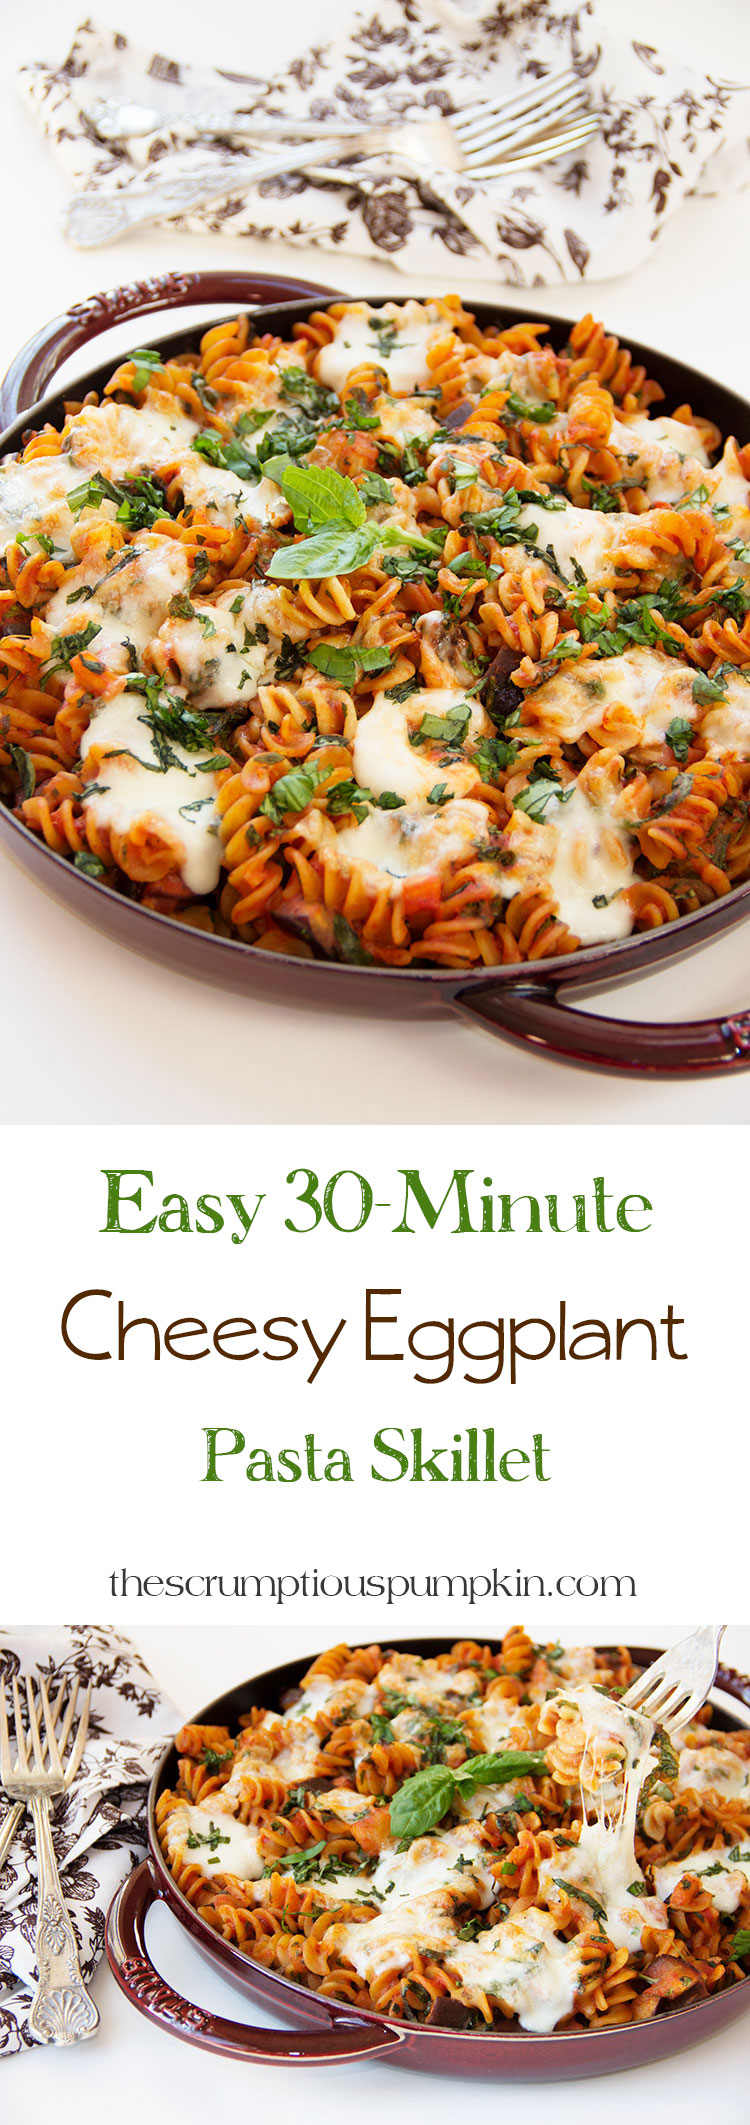 30-Minute-Easy-Cheesy-Eggplant-Pasta-Skillet